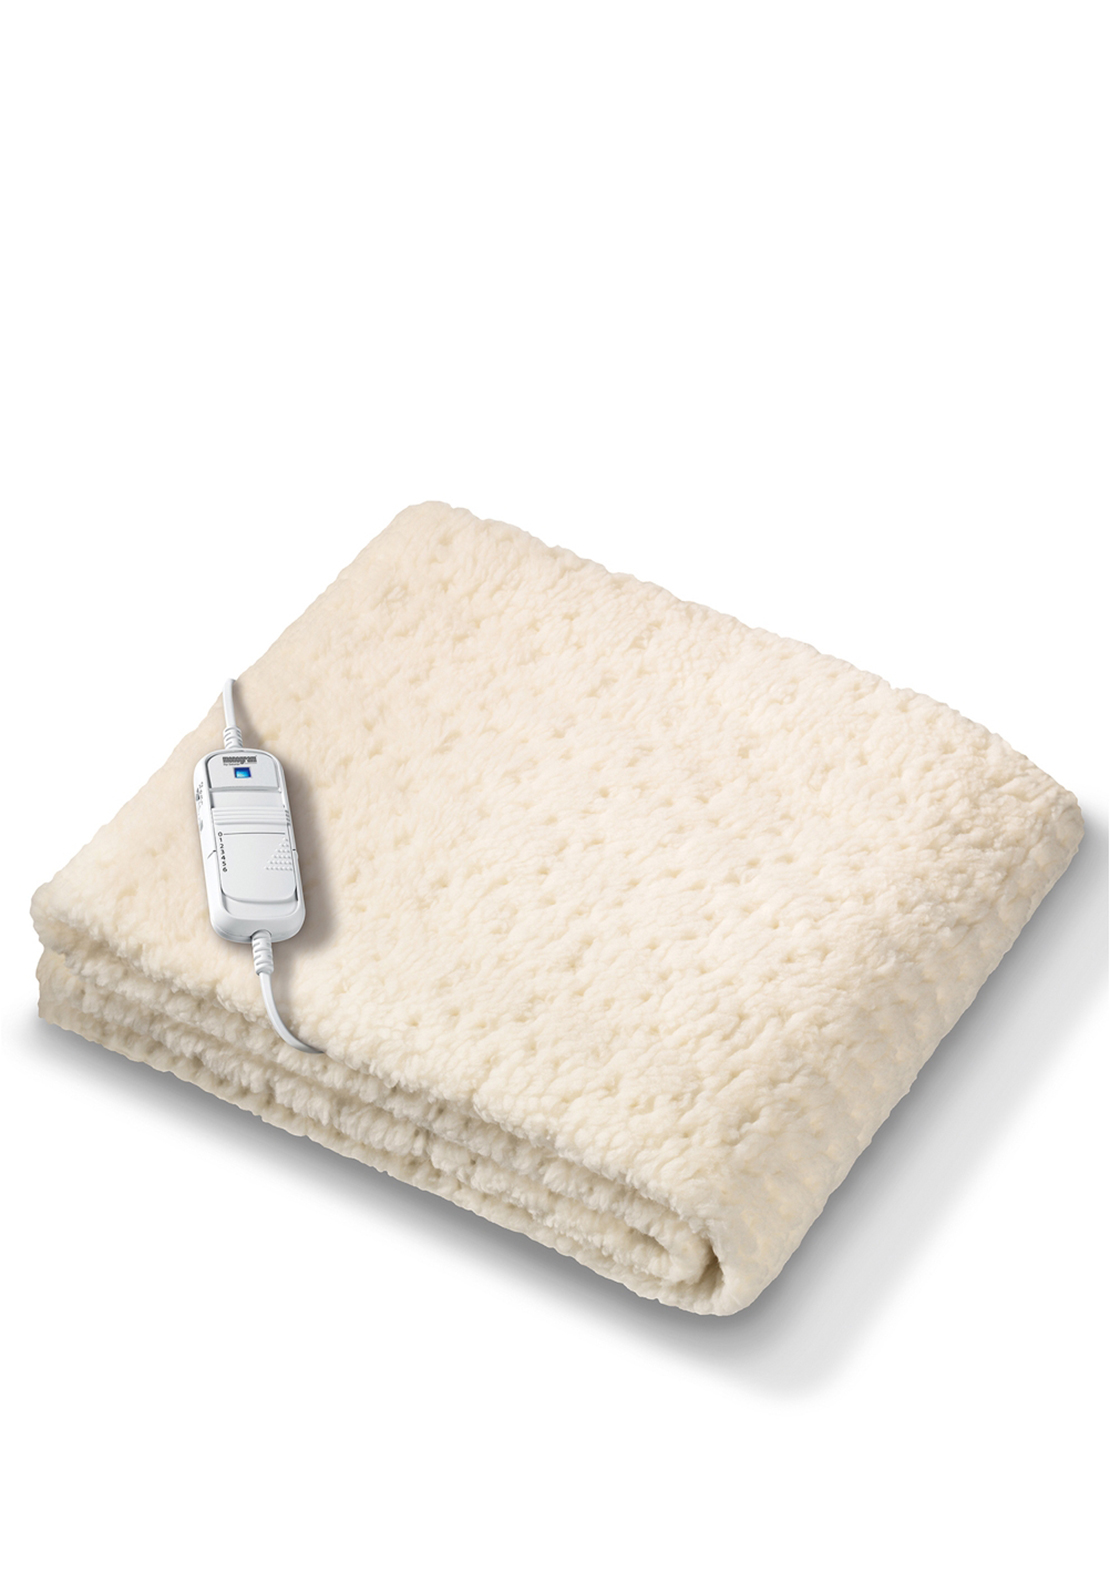 Monogram Komfort Heated Mattress Cover Single